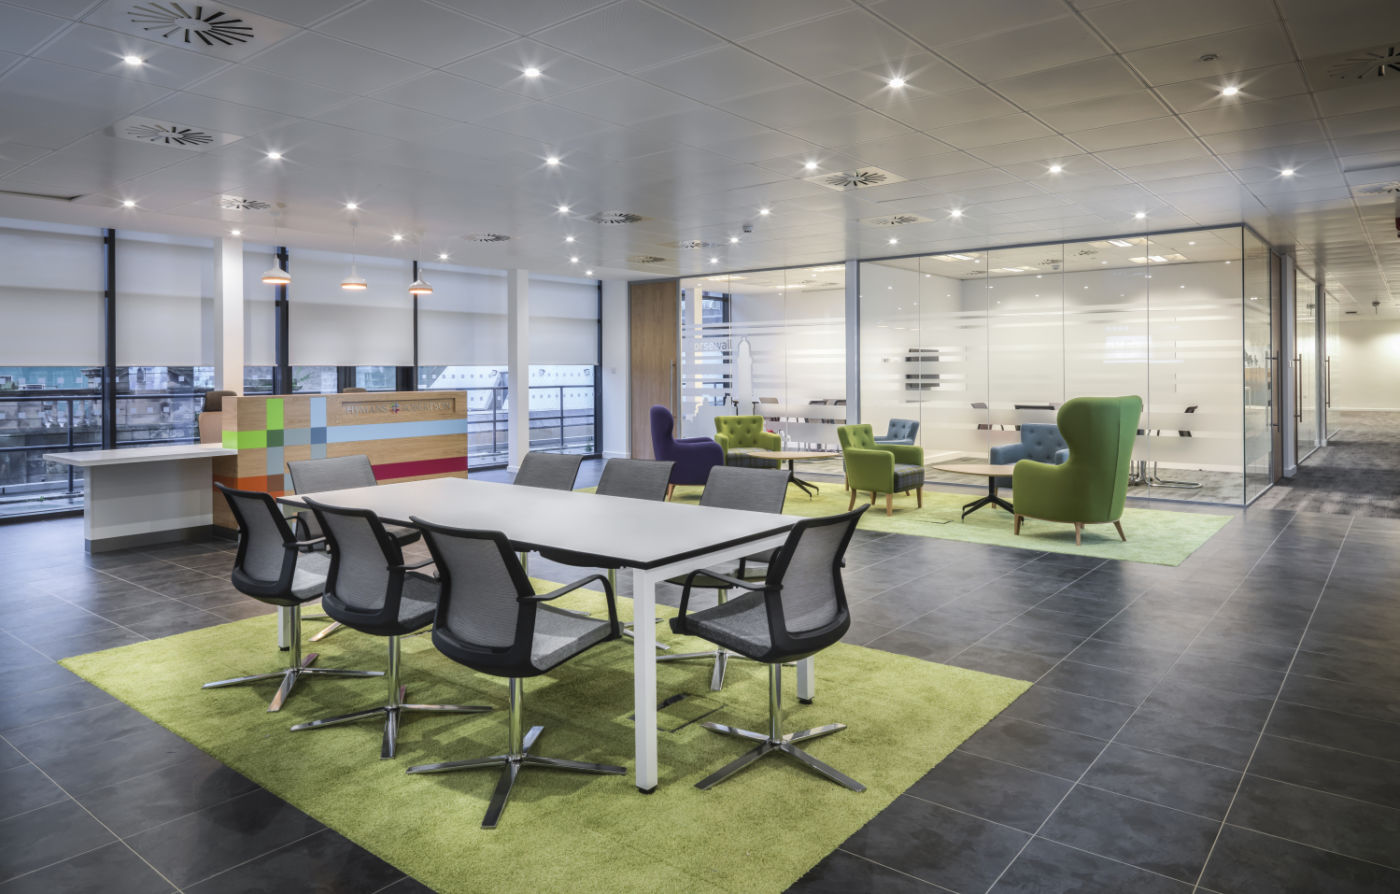 Informal meeting area with colourful fit out